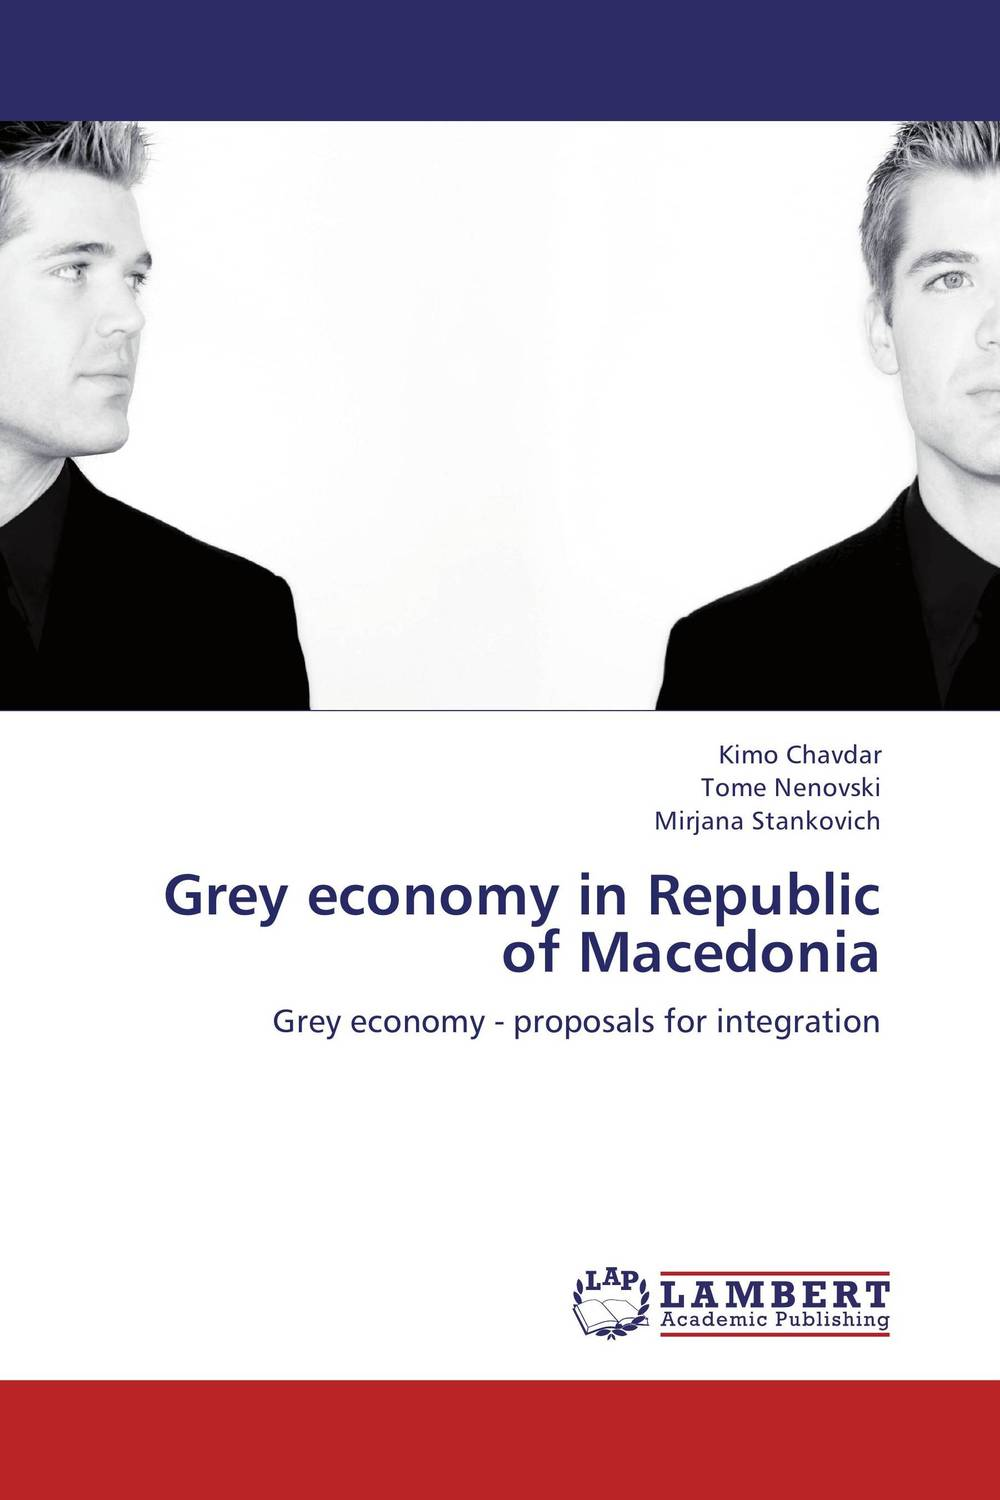 Grey economy in Republic of Macedonia